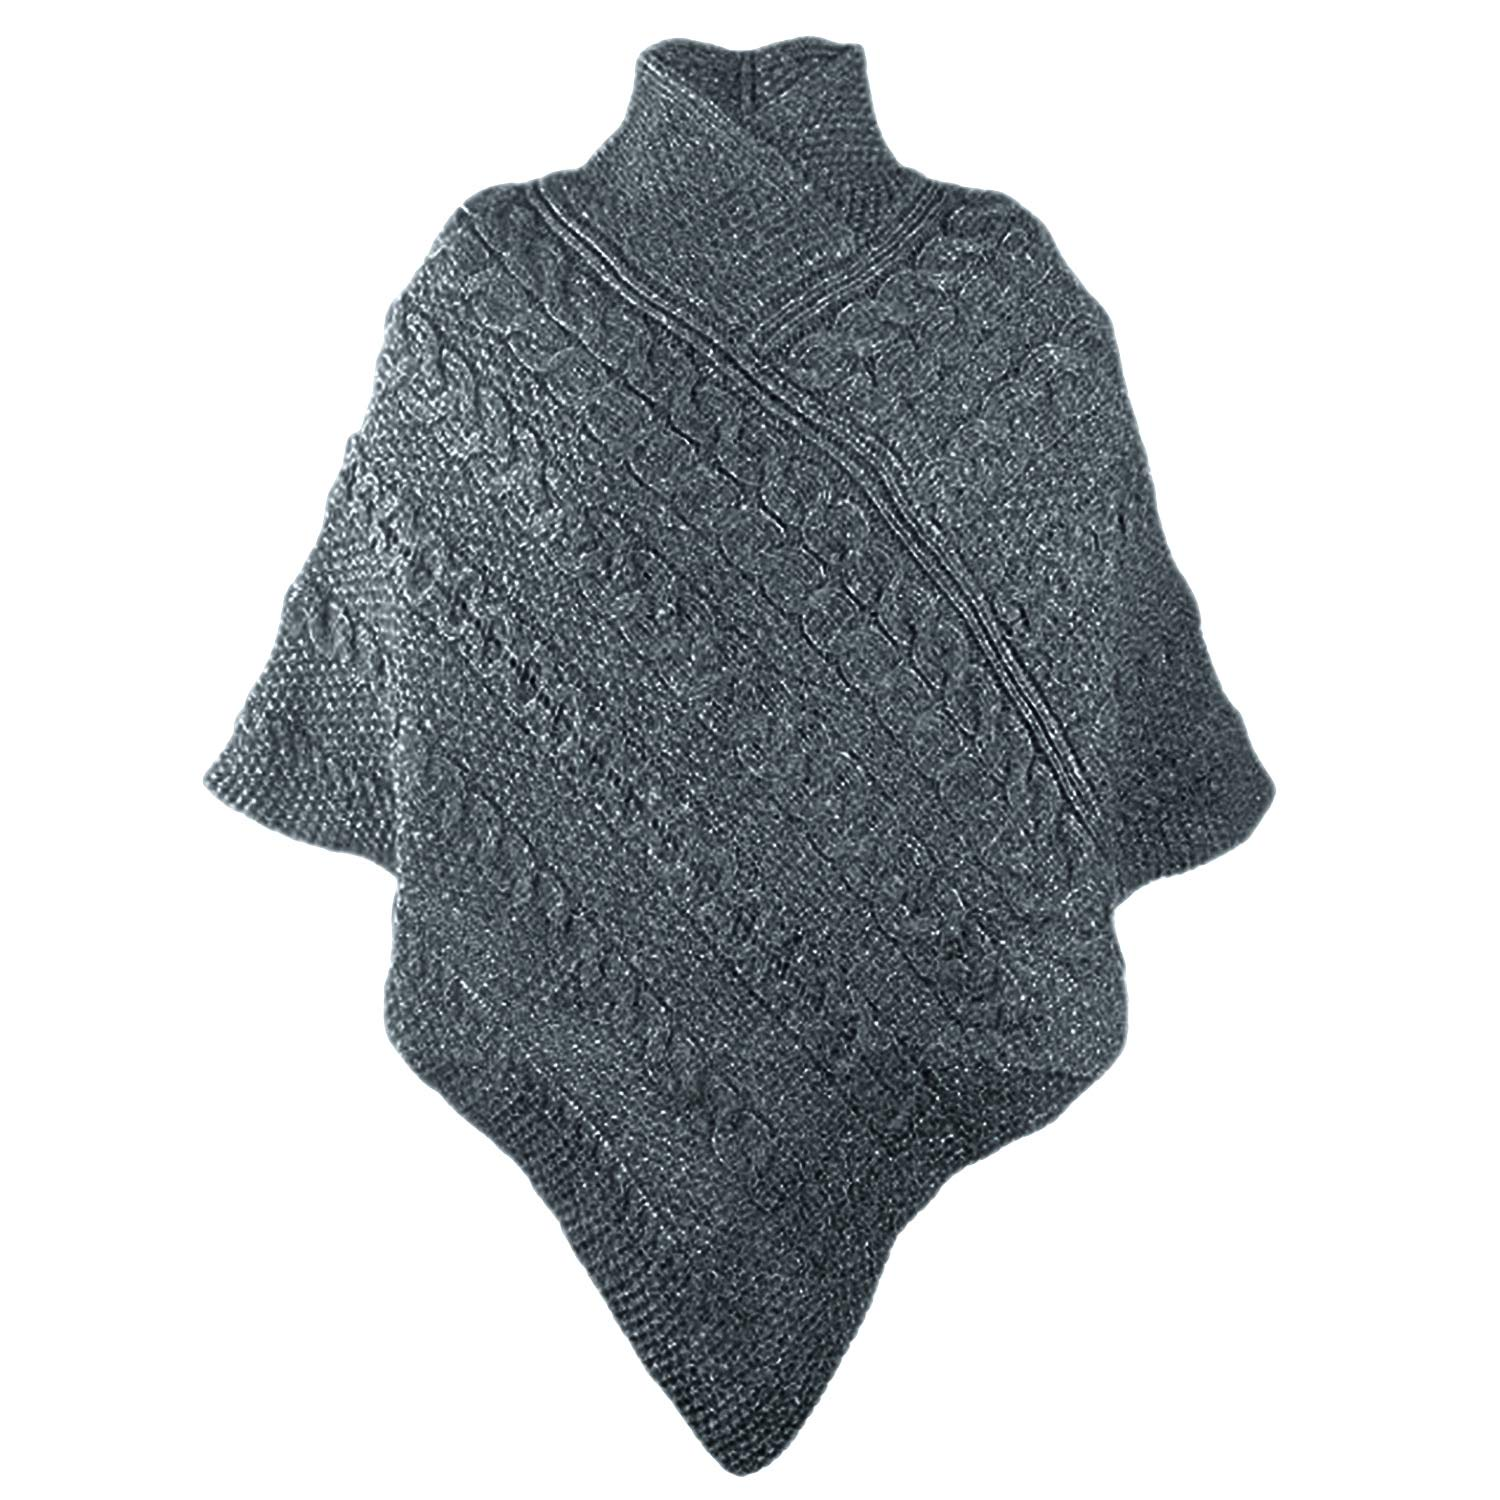 be3ef6d6f Amazon.com: 100% Merino Wool Aran Crafts Ladies Knit Poncho Charcoal:  Clothing